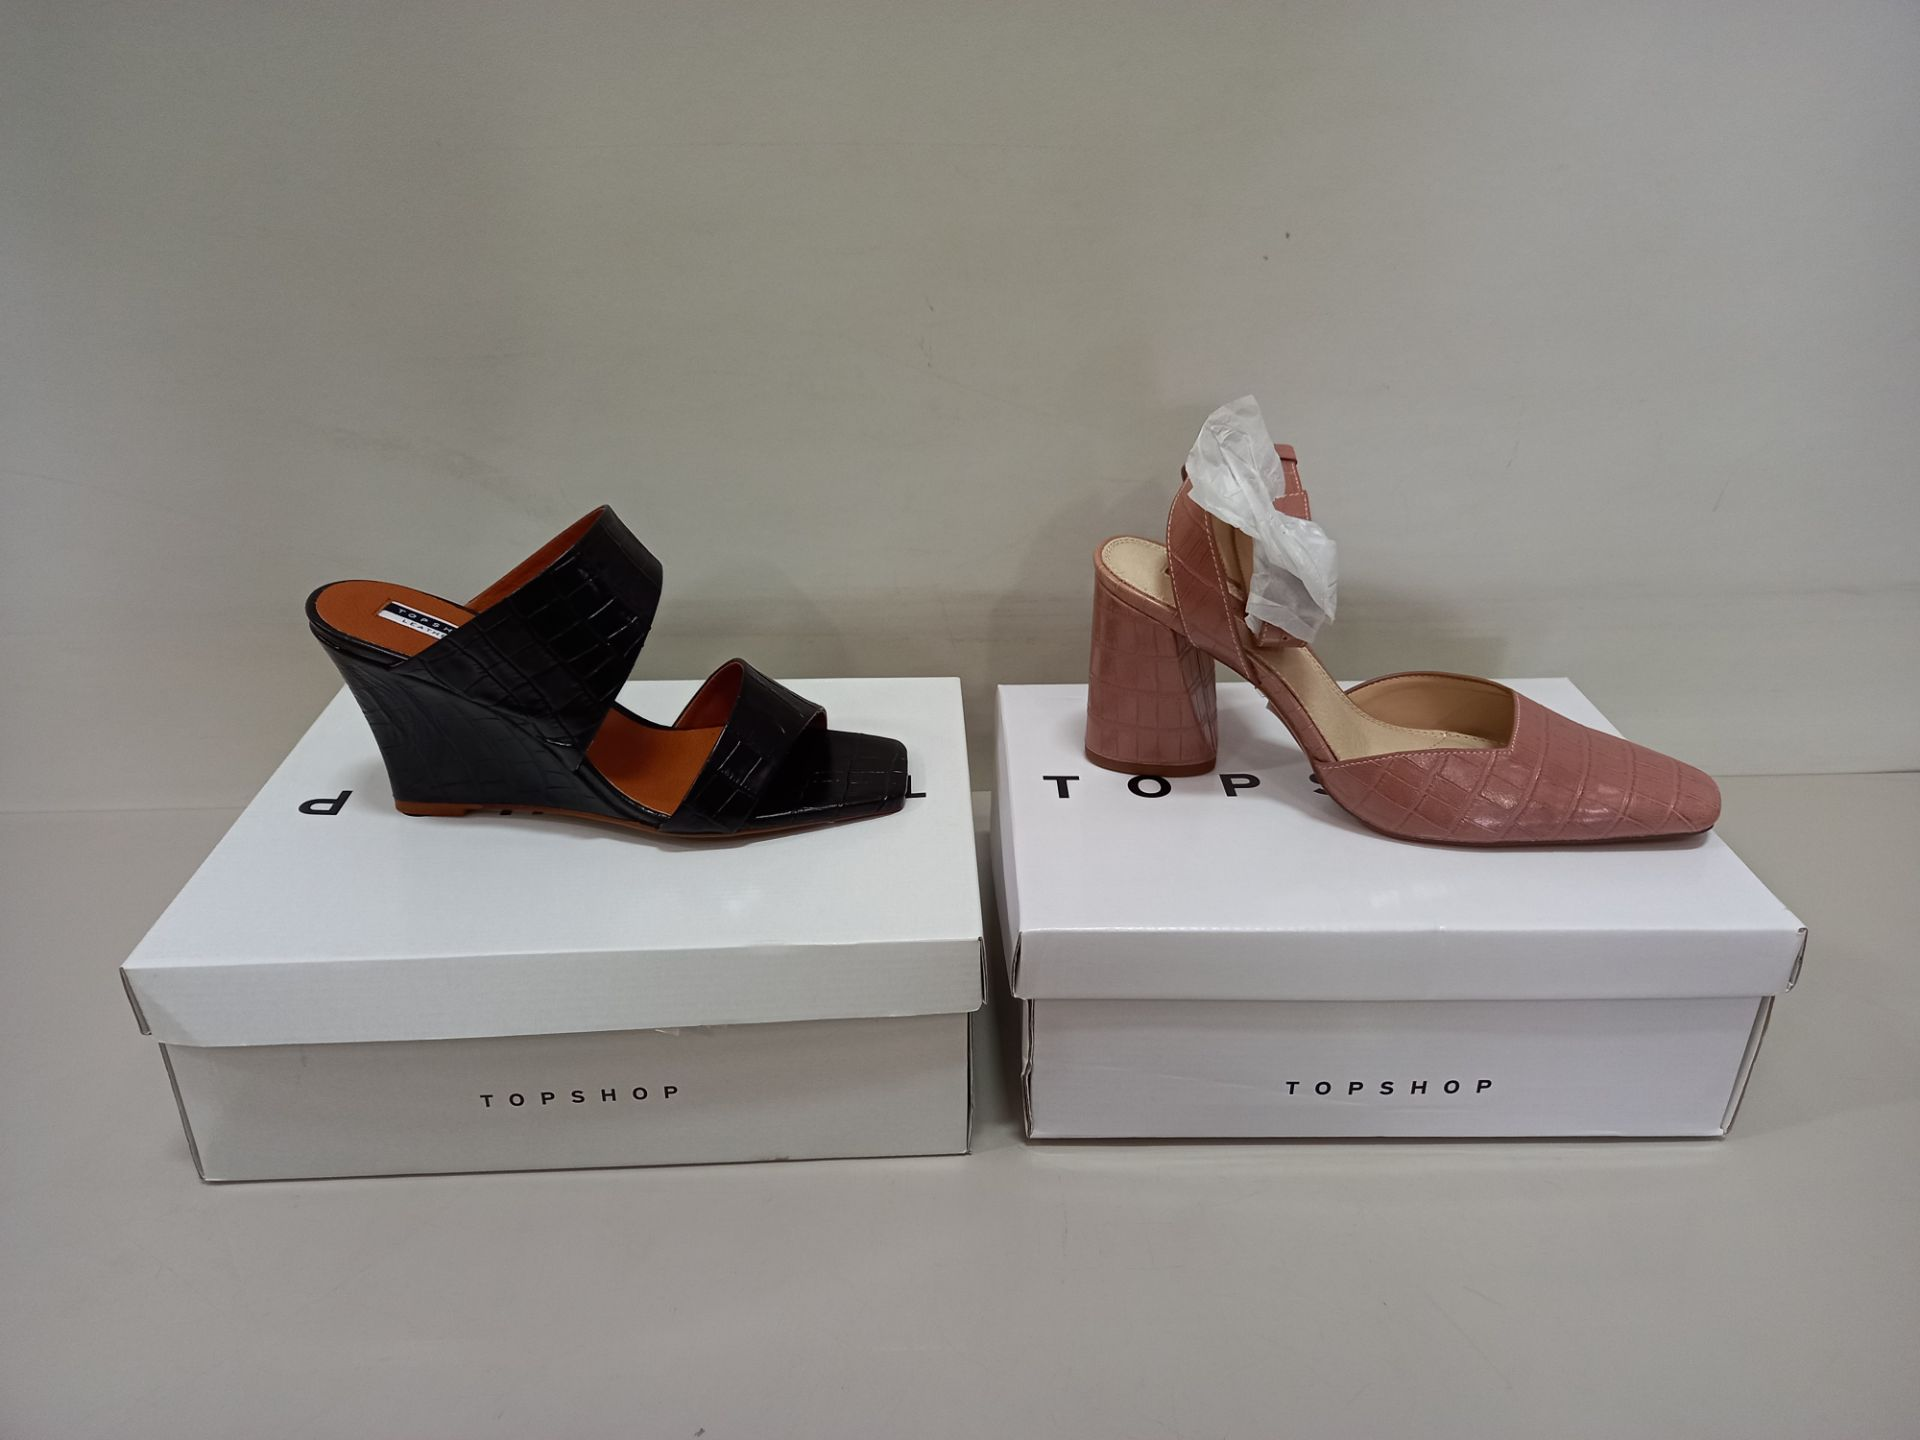 9 X BRAND NEW TOPSHOP SHOES - 5 X GAZE PIN SHOES UK SIZE 7 RRP £39.00 AND 4 X RELLIK BLACK UK SIZE 5